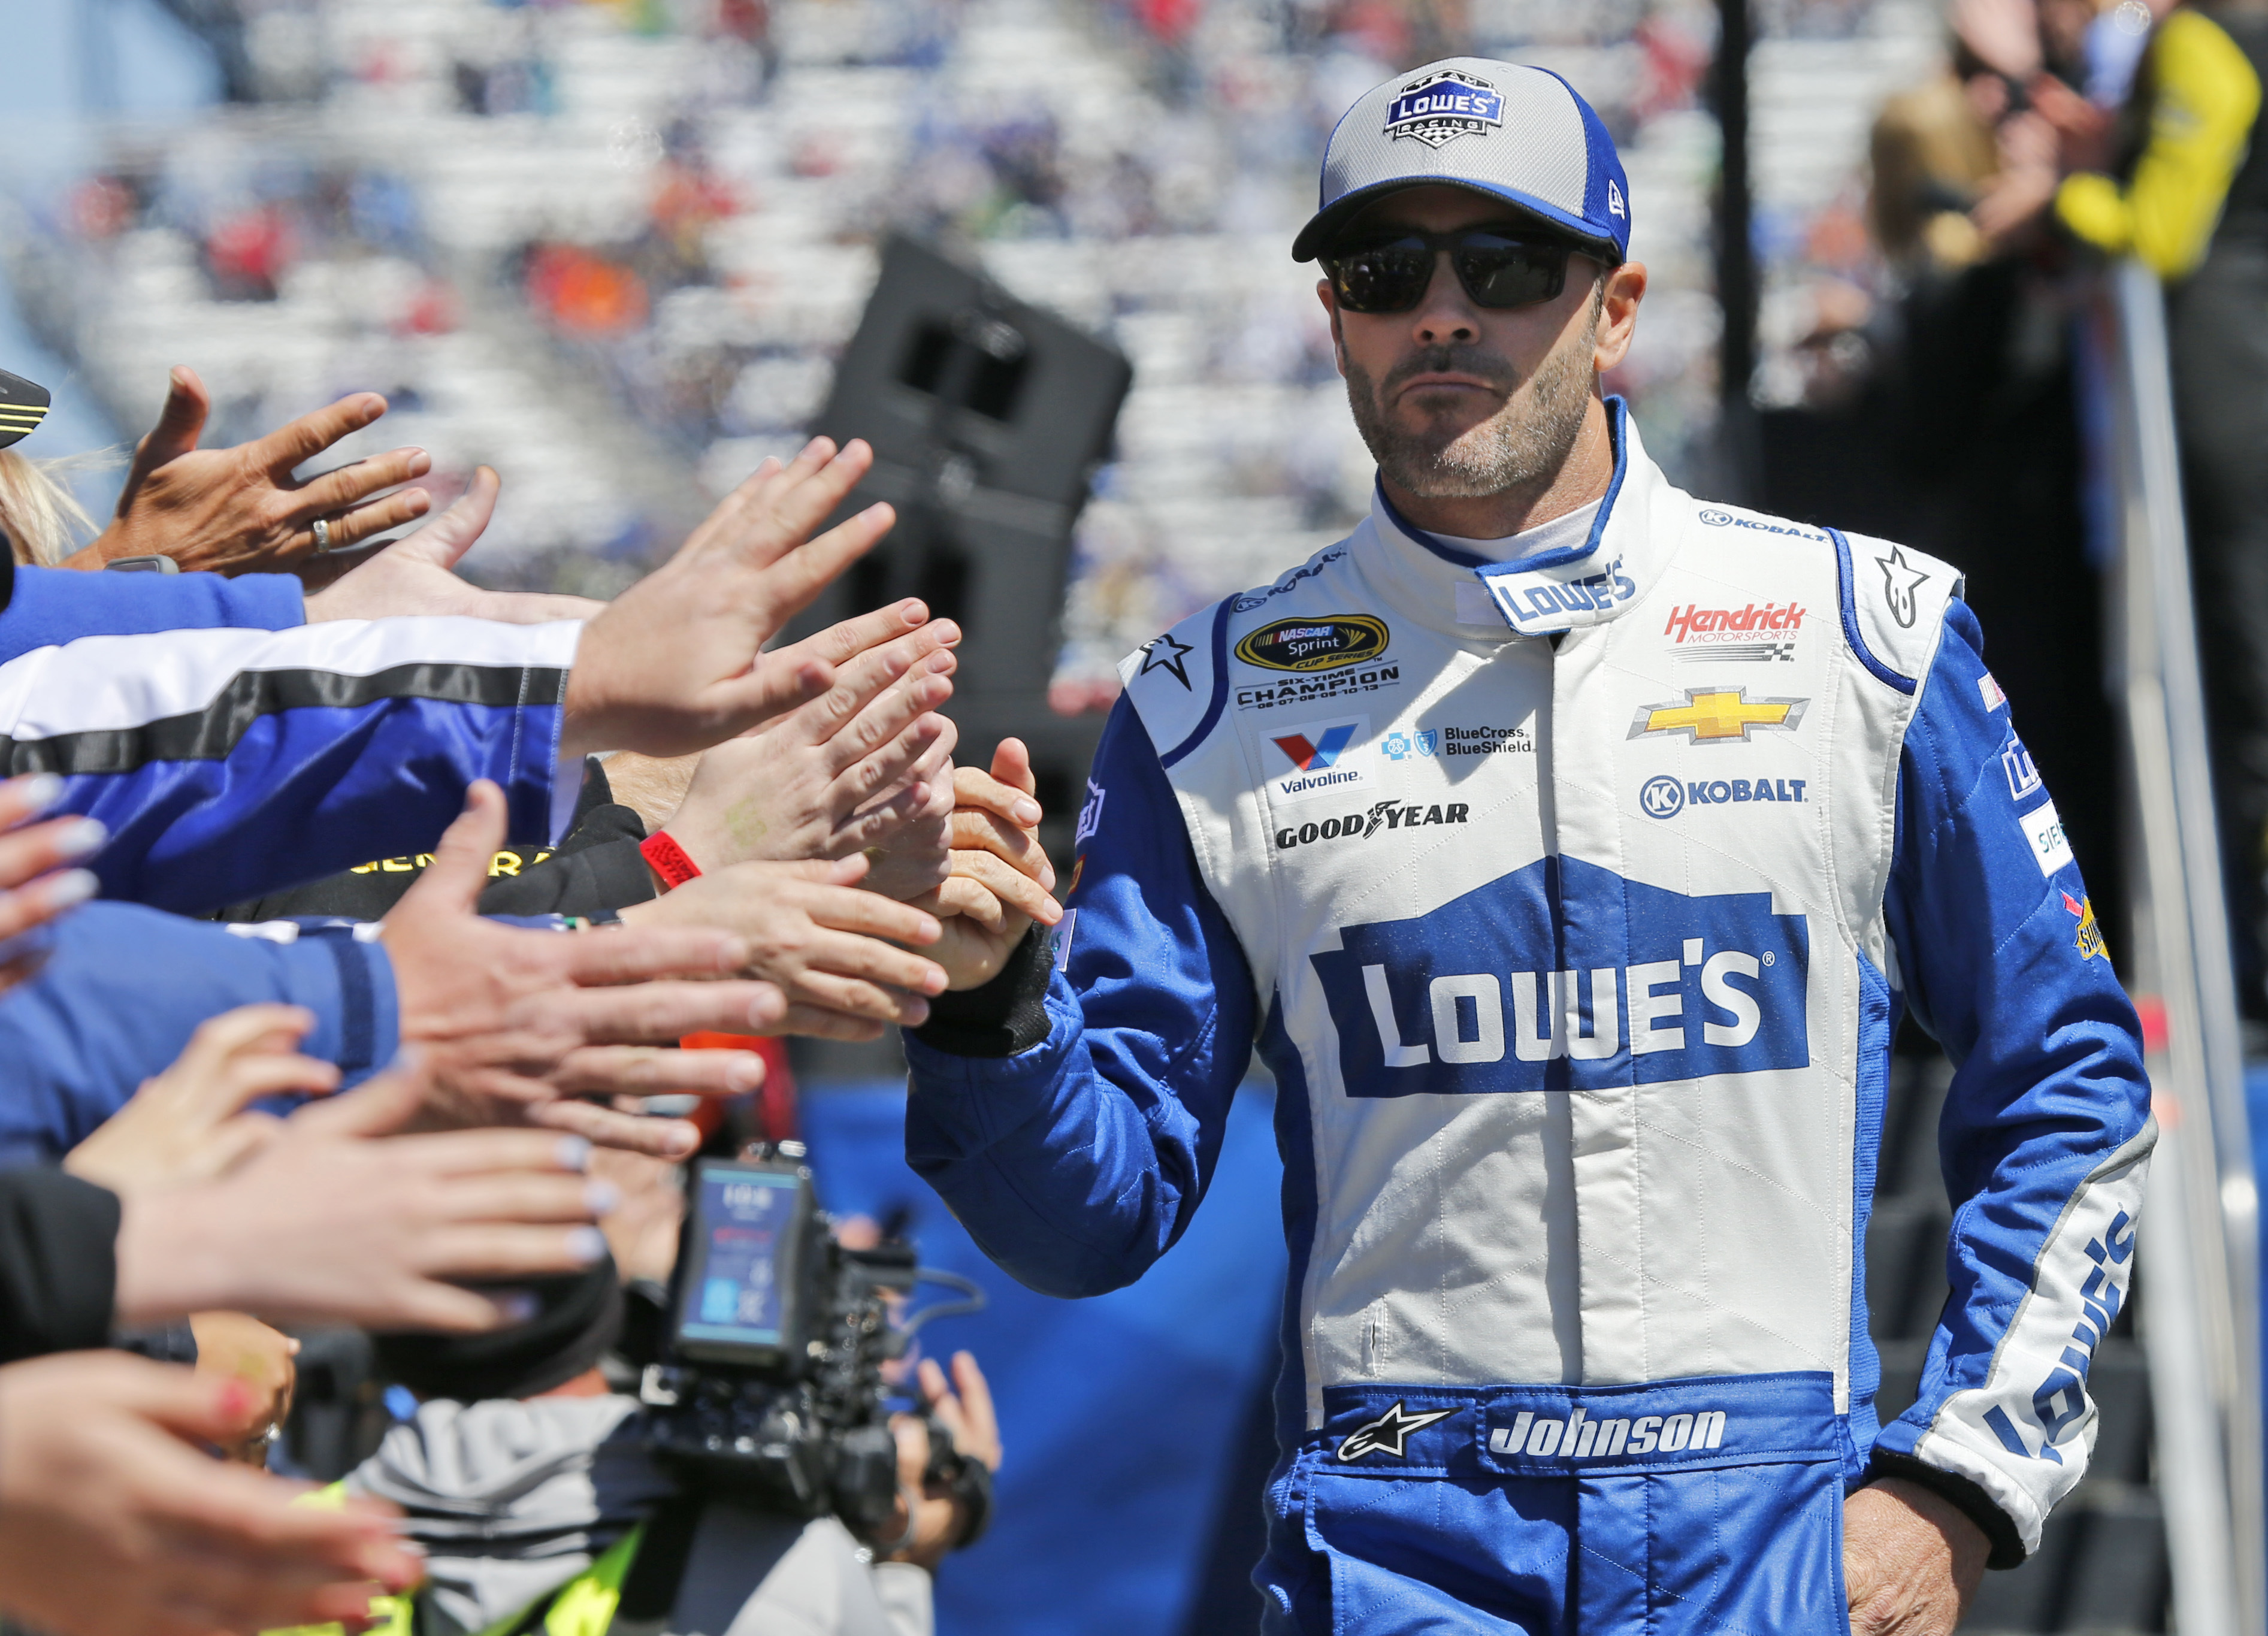 Driver Jimmie Johnson greets fans during driver introductions for the Sprint Cup auto race at Martinsville Speedway on Sunday, April 3, 2016, in Martinsville, Va. (AP Photo/Steve Helber)